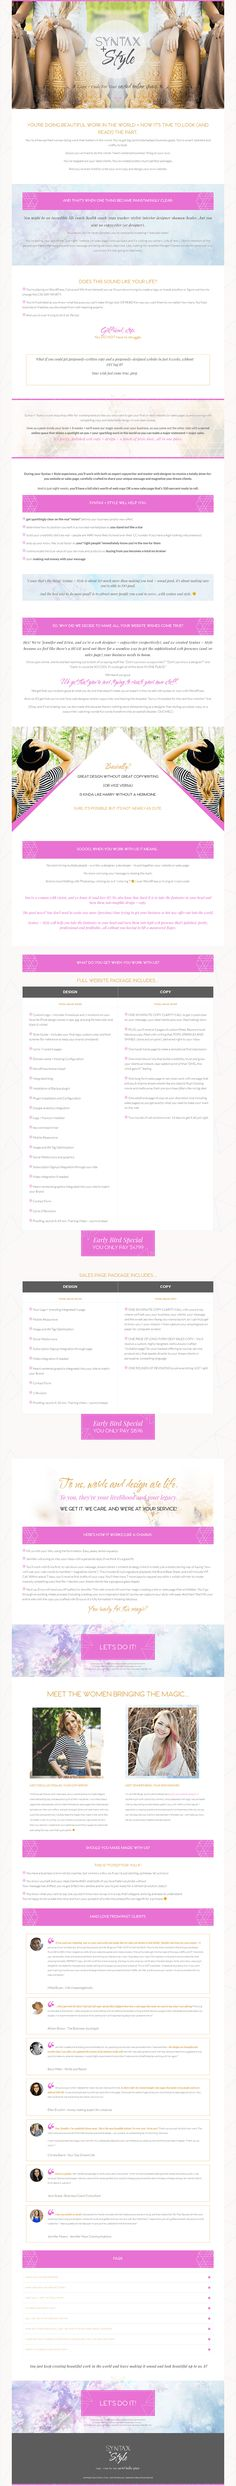 sales page inspiration - Syntax and Style by Coral Antler Creative Page Design, Web Design, Graphic Design, Design Elements, Coral, Coding, Branding, Blog, Bright Pink